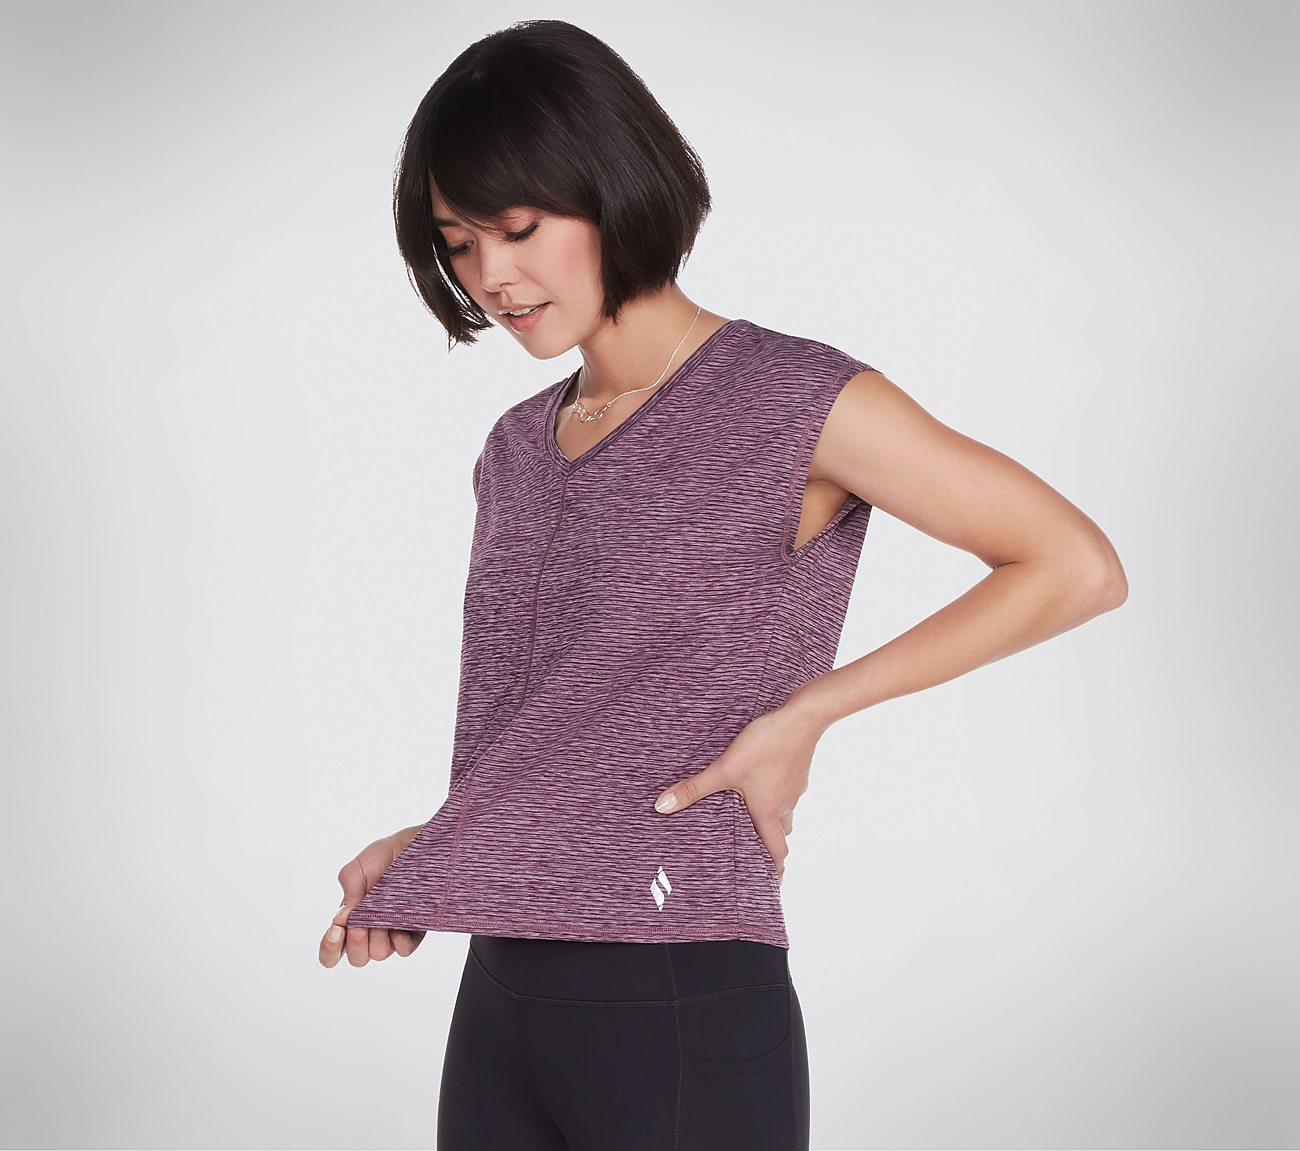 Skechers Apparel Session Top